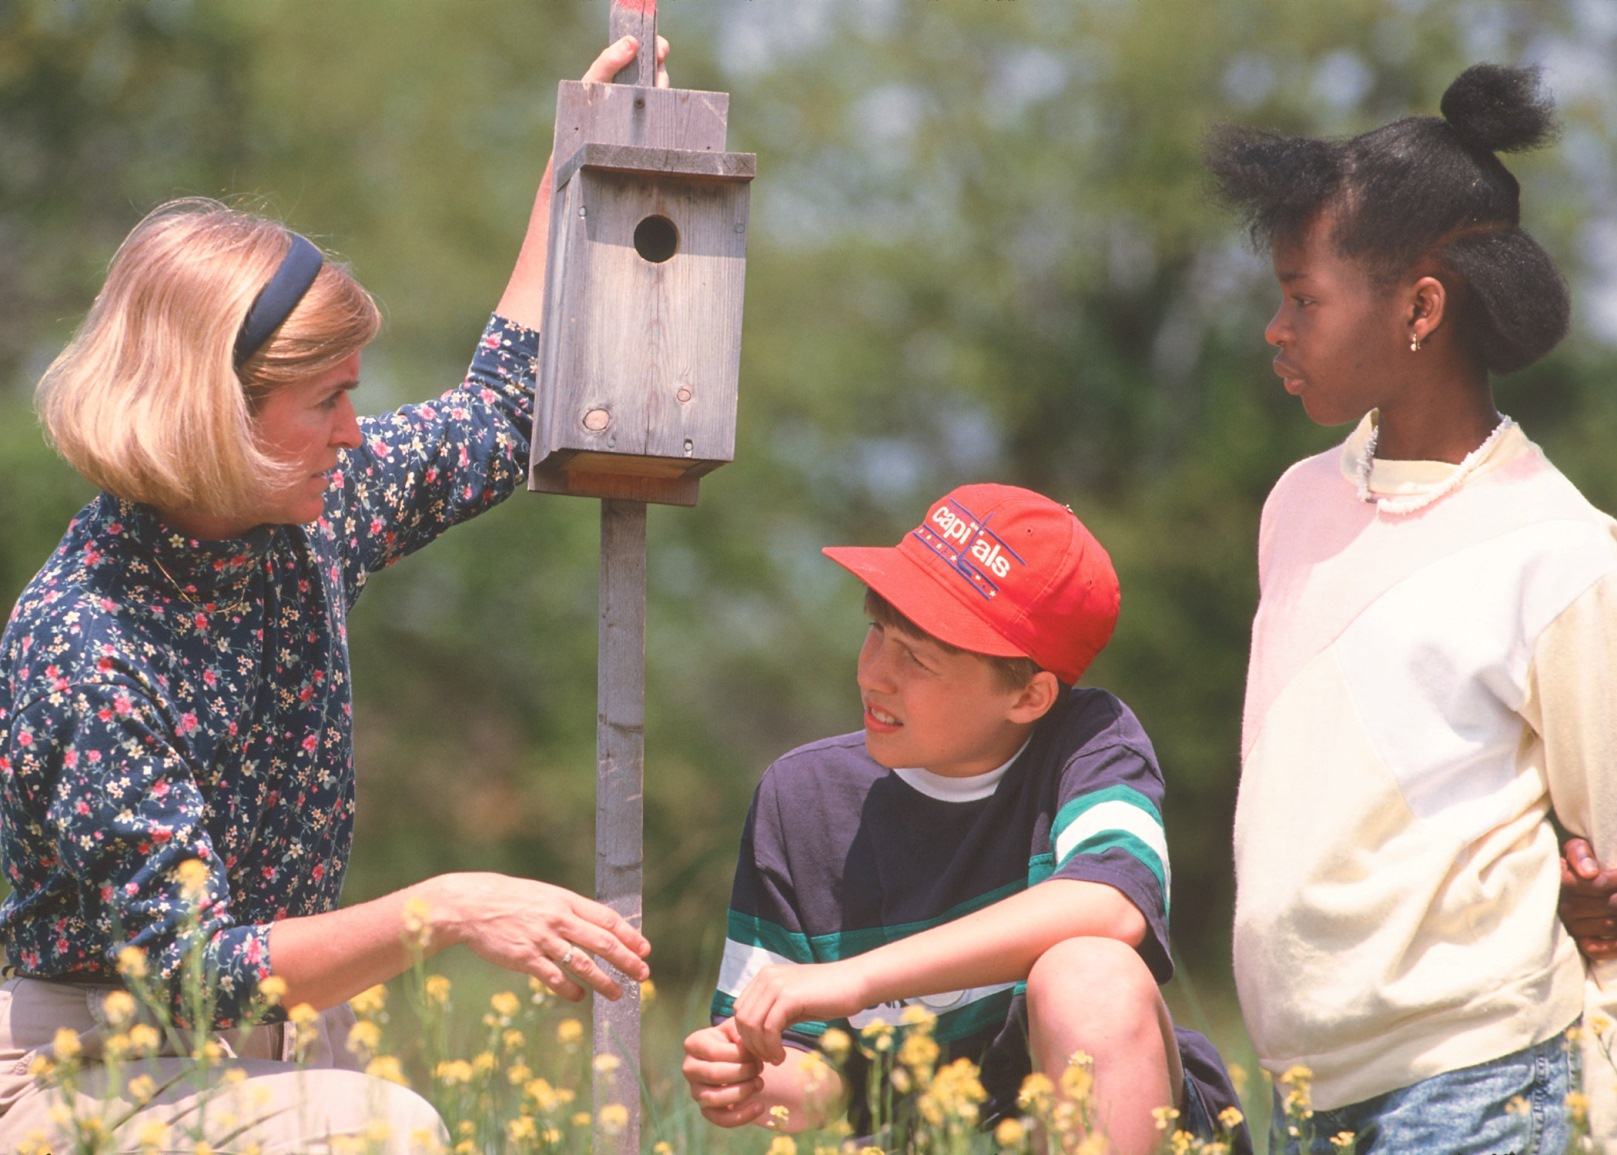 Conservation Education - Teacher with students and duck nesting box